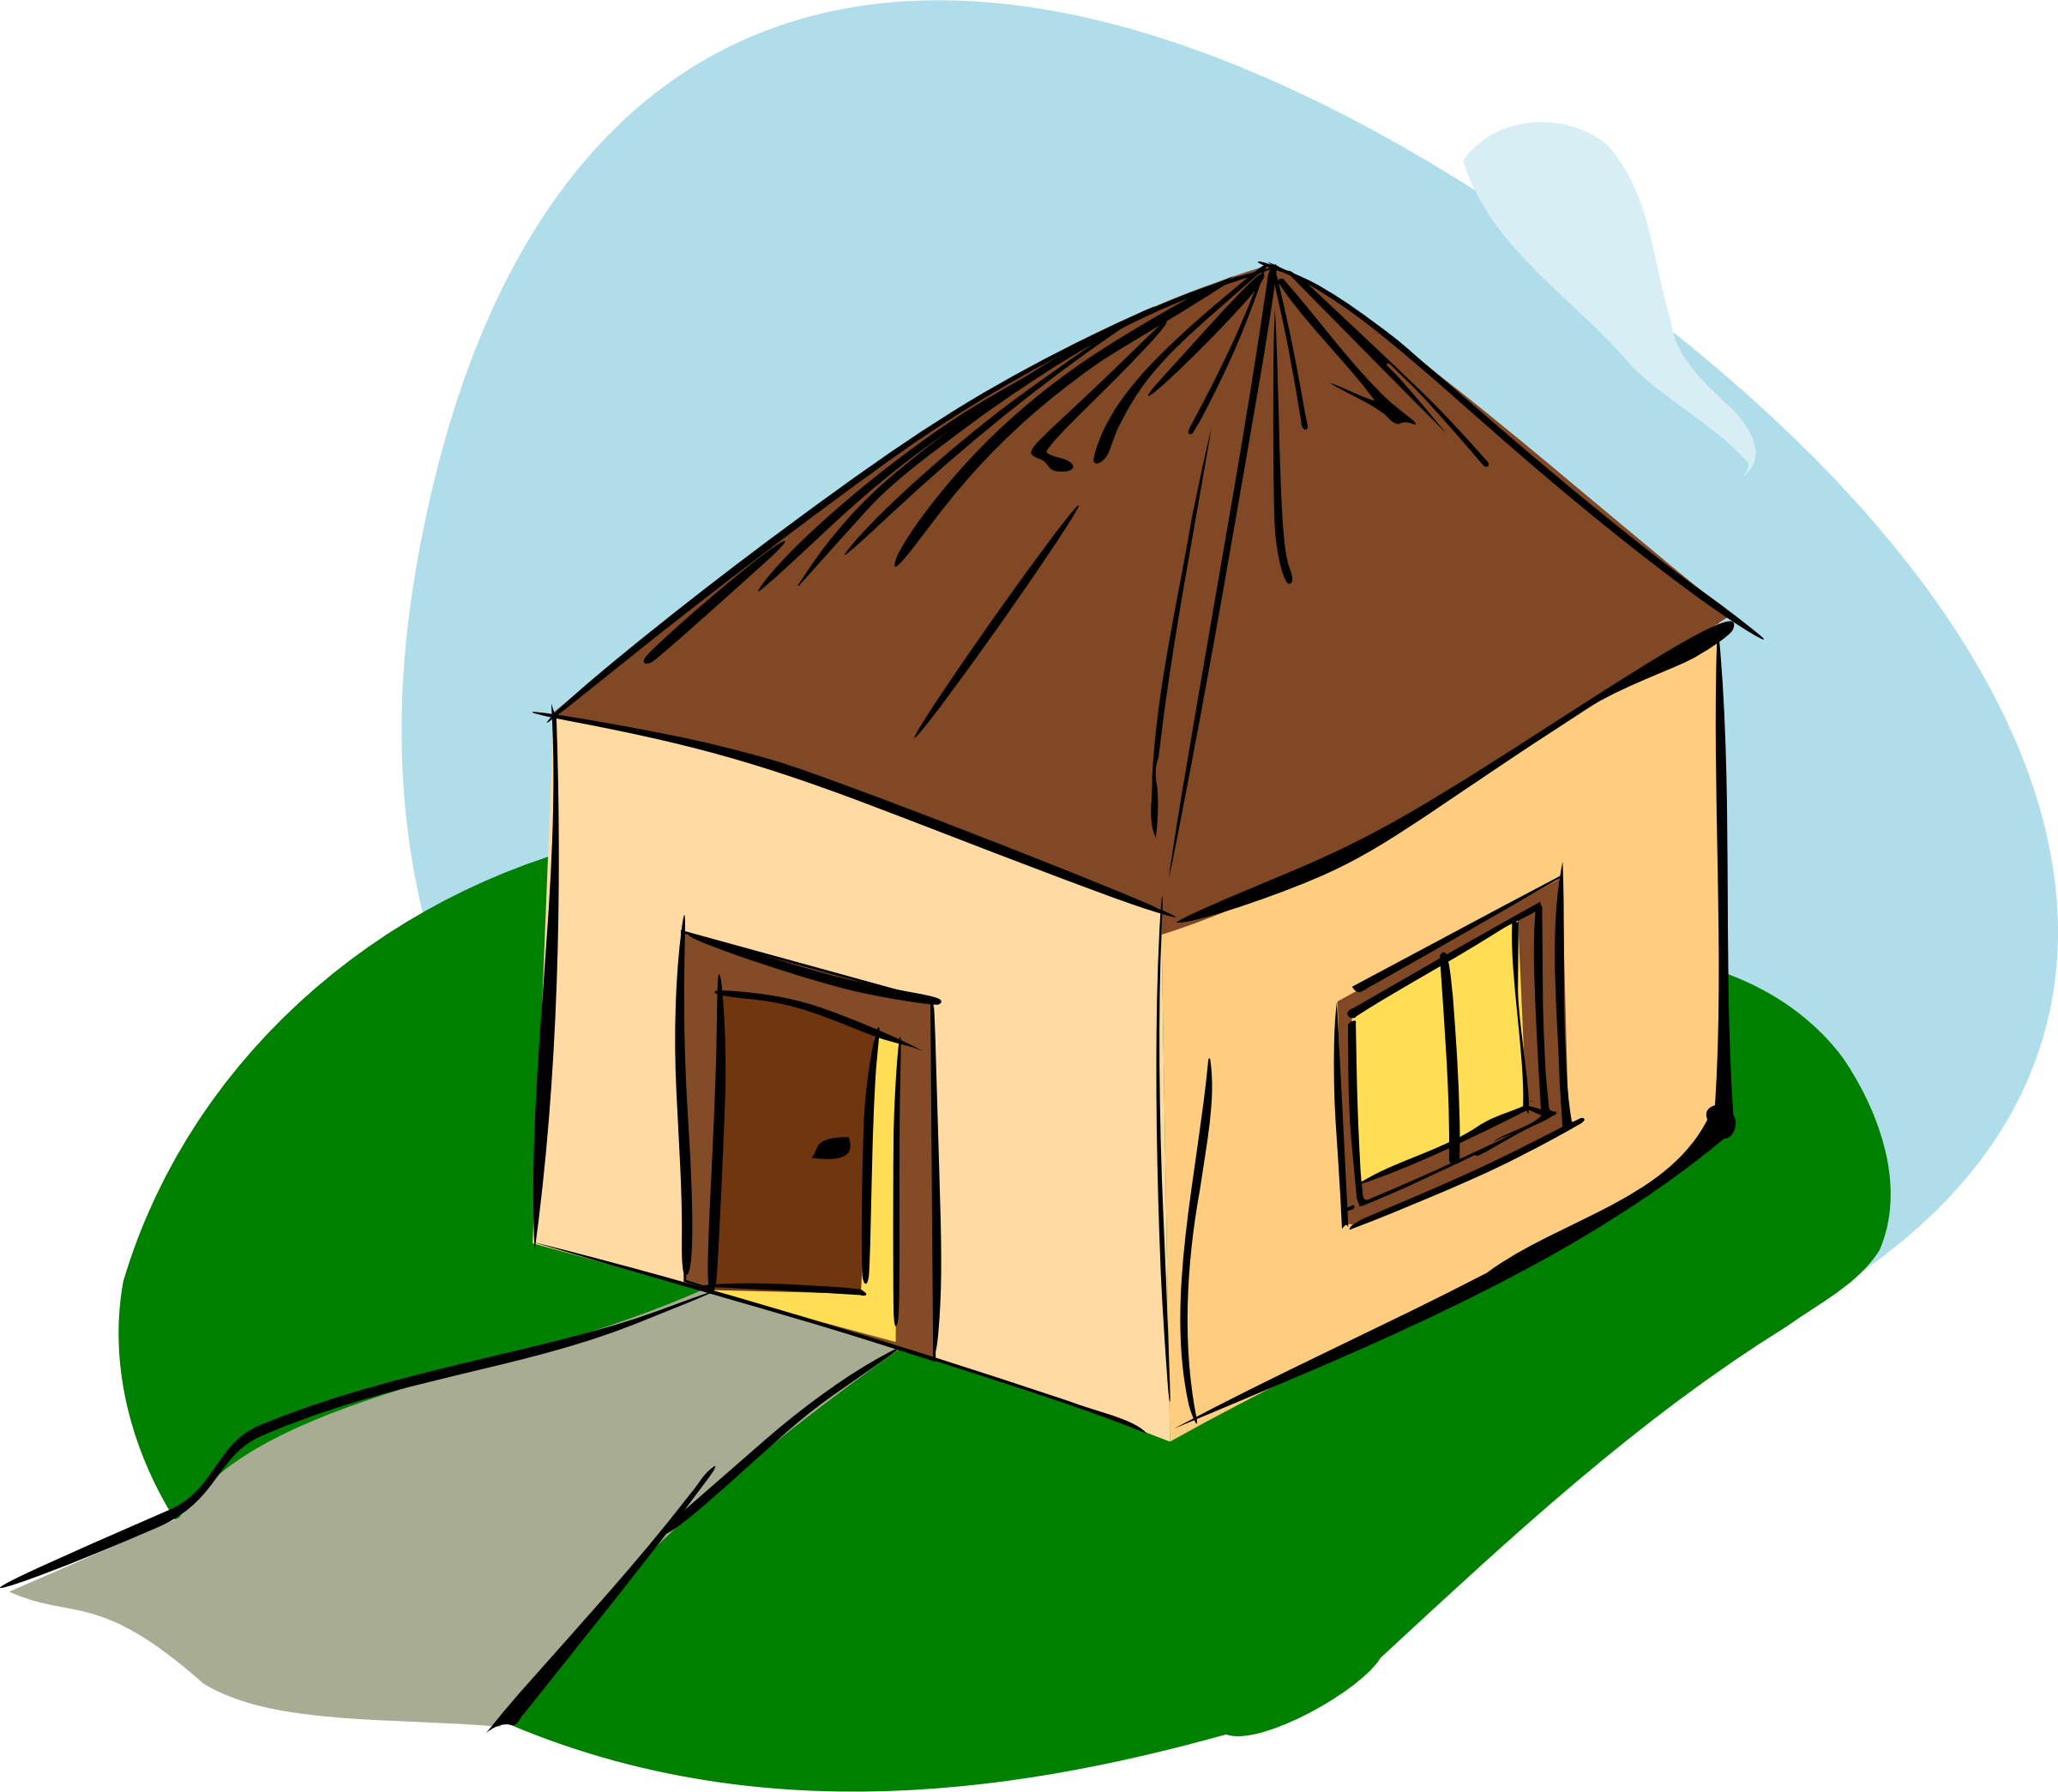 Hut clipart #13, Download drawings